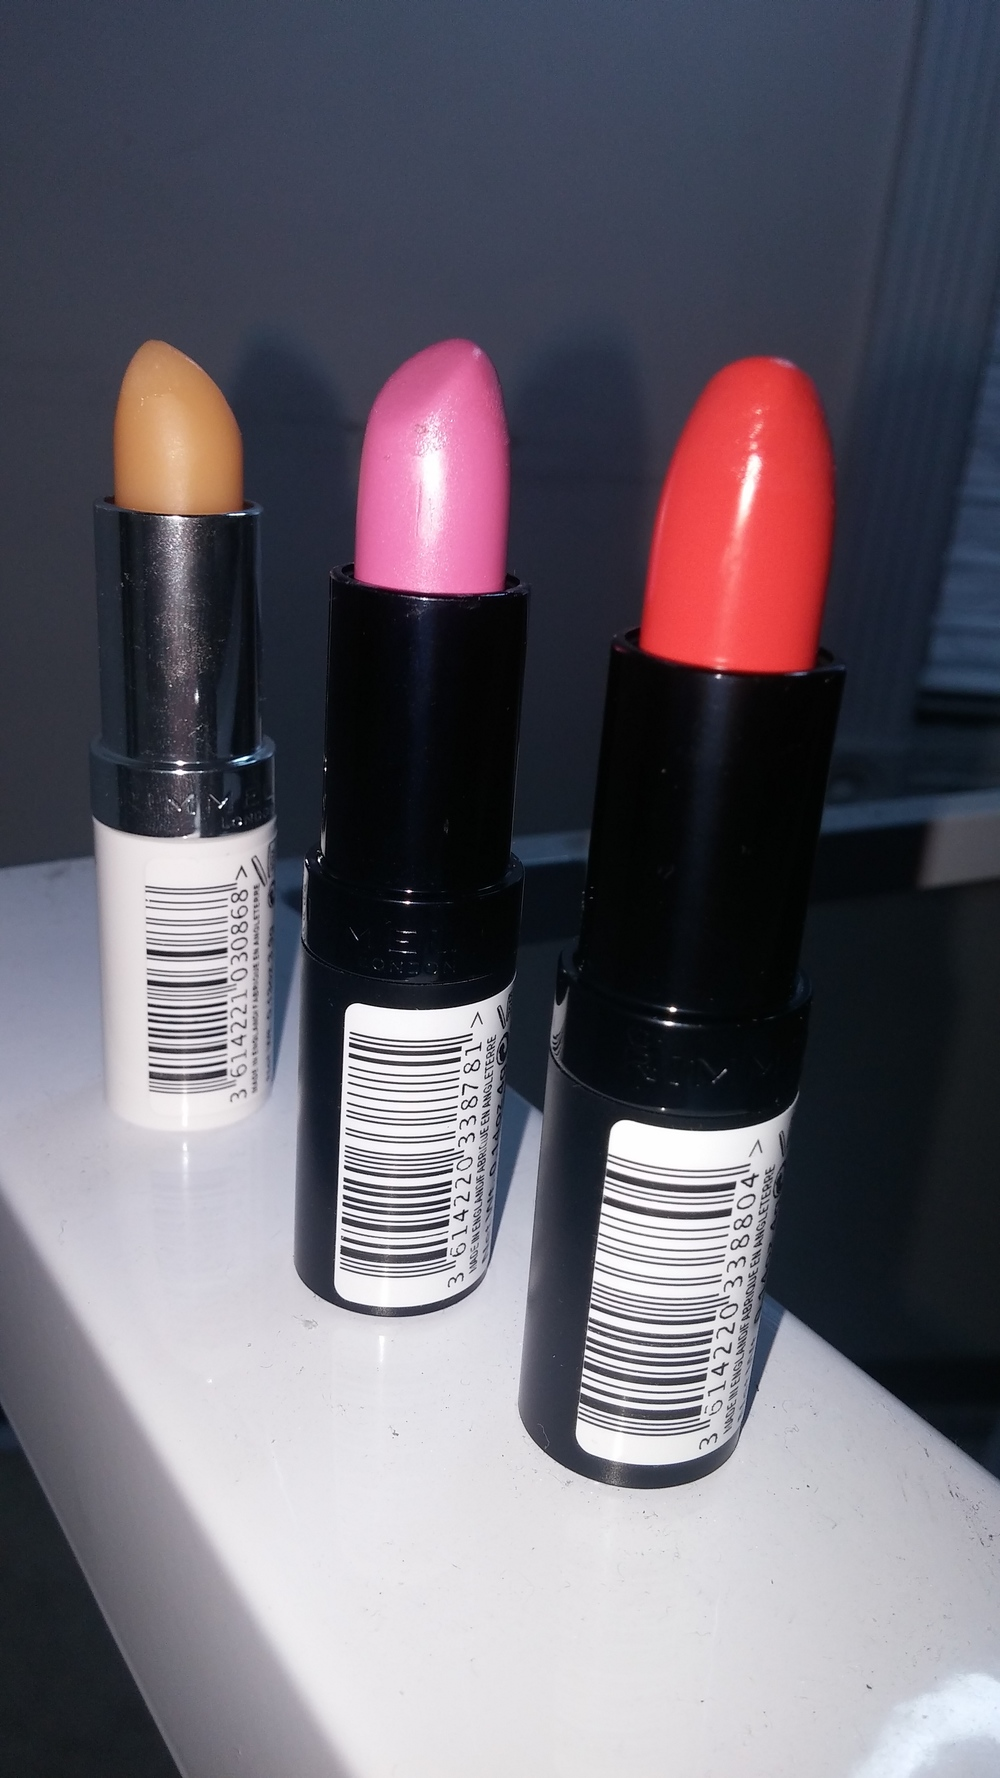 Left to right: Lip conditioner, #35, #37.